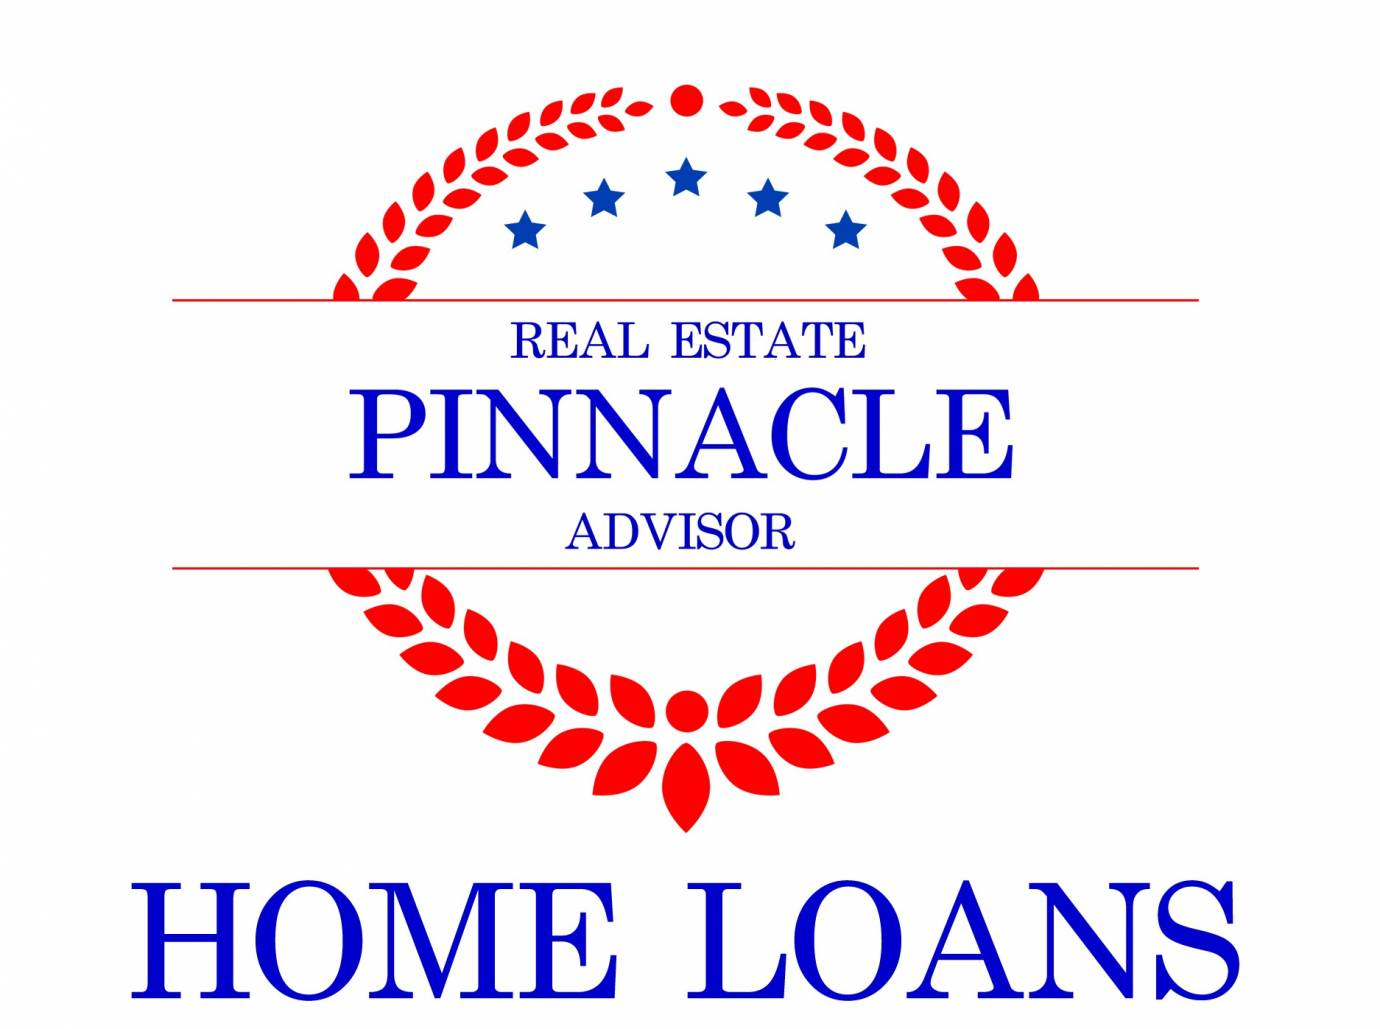 Pinnacle Real Estate Advisor Home Loans